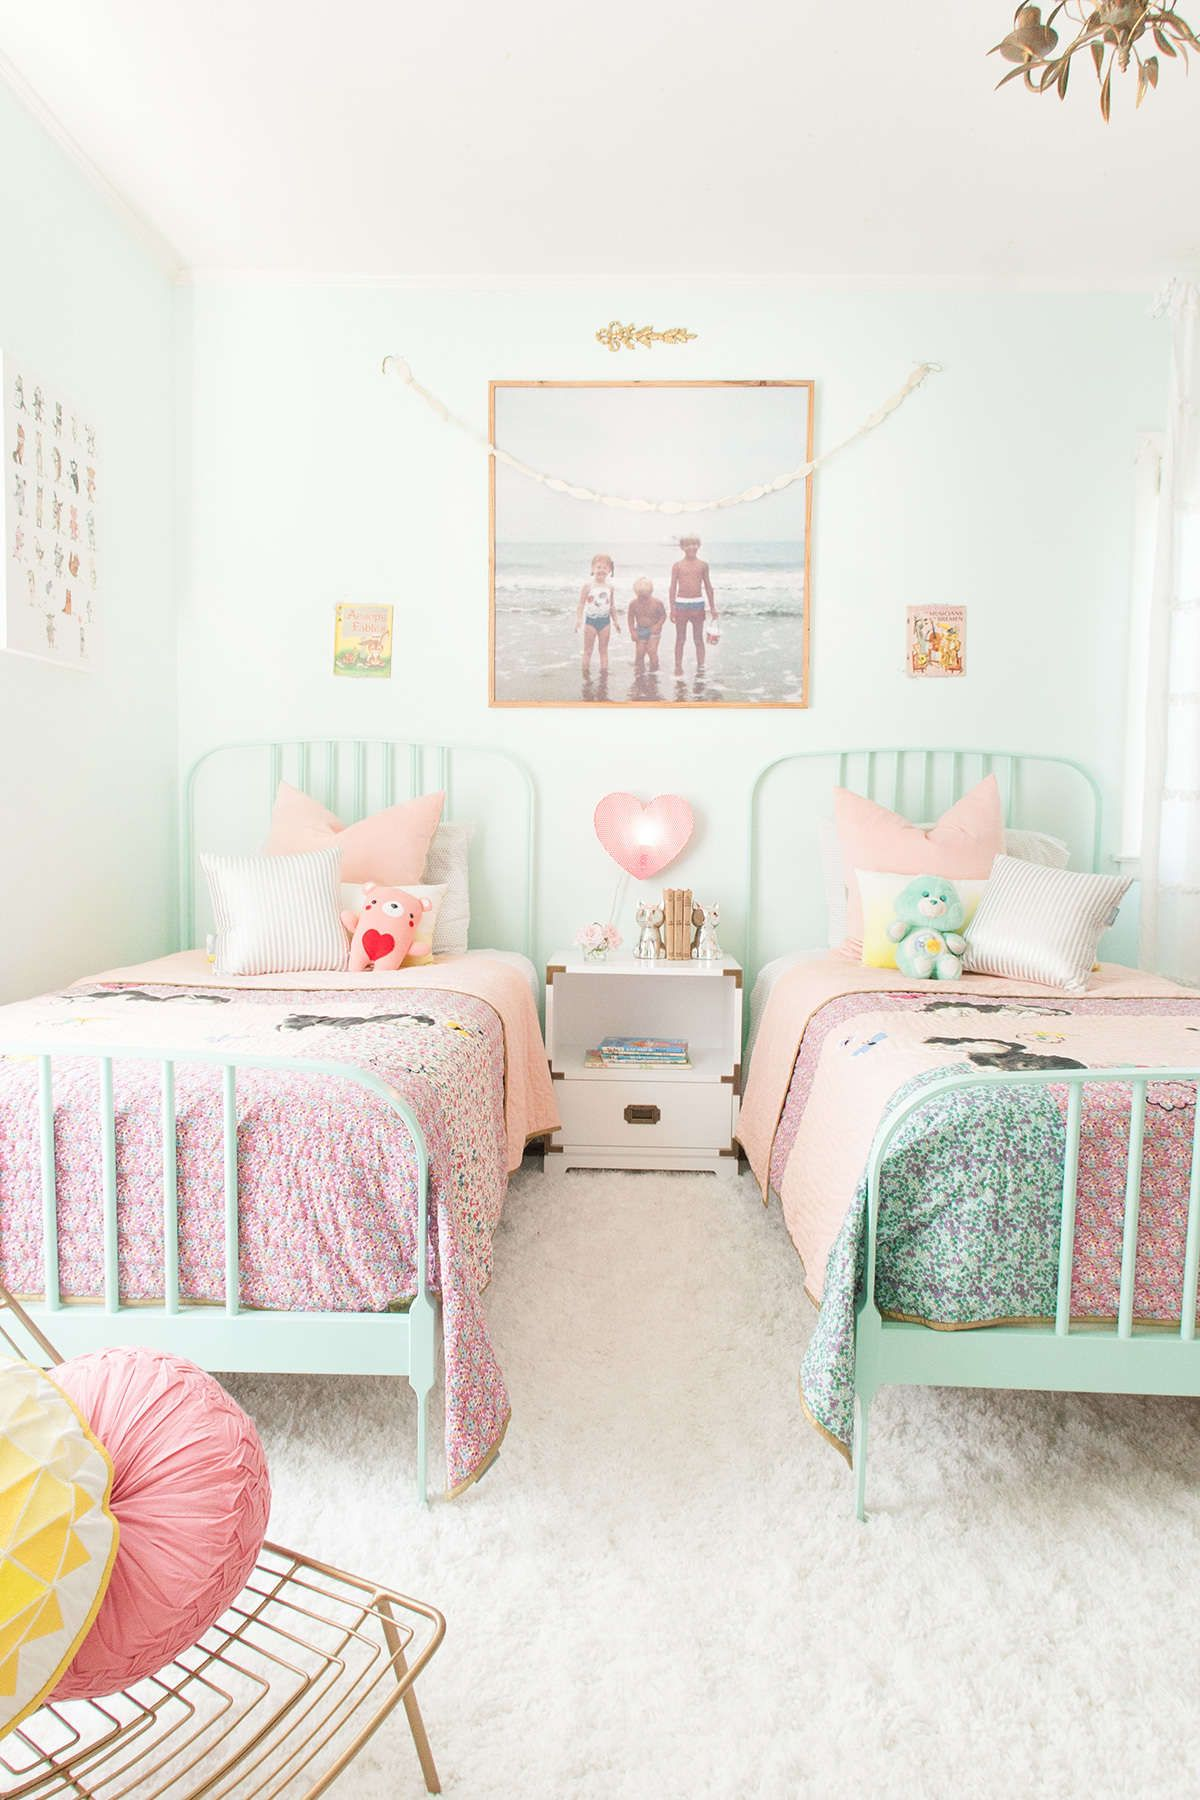 shared room inspiration with the land of nod in 2019 kids\u0027 roomsi like the color scheme here the pink auqa color i like how light and airy for mla